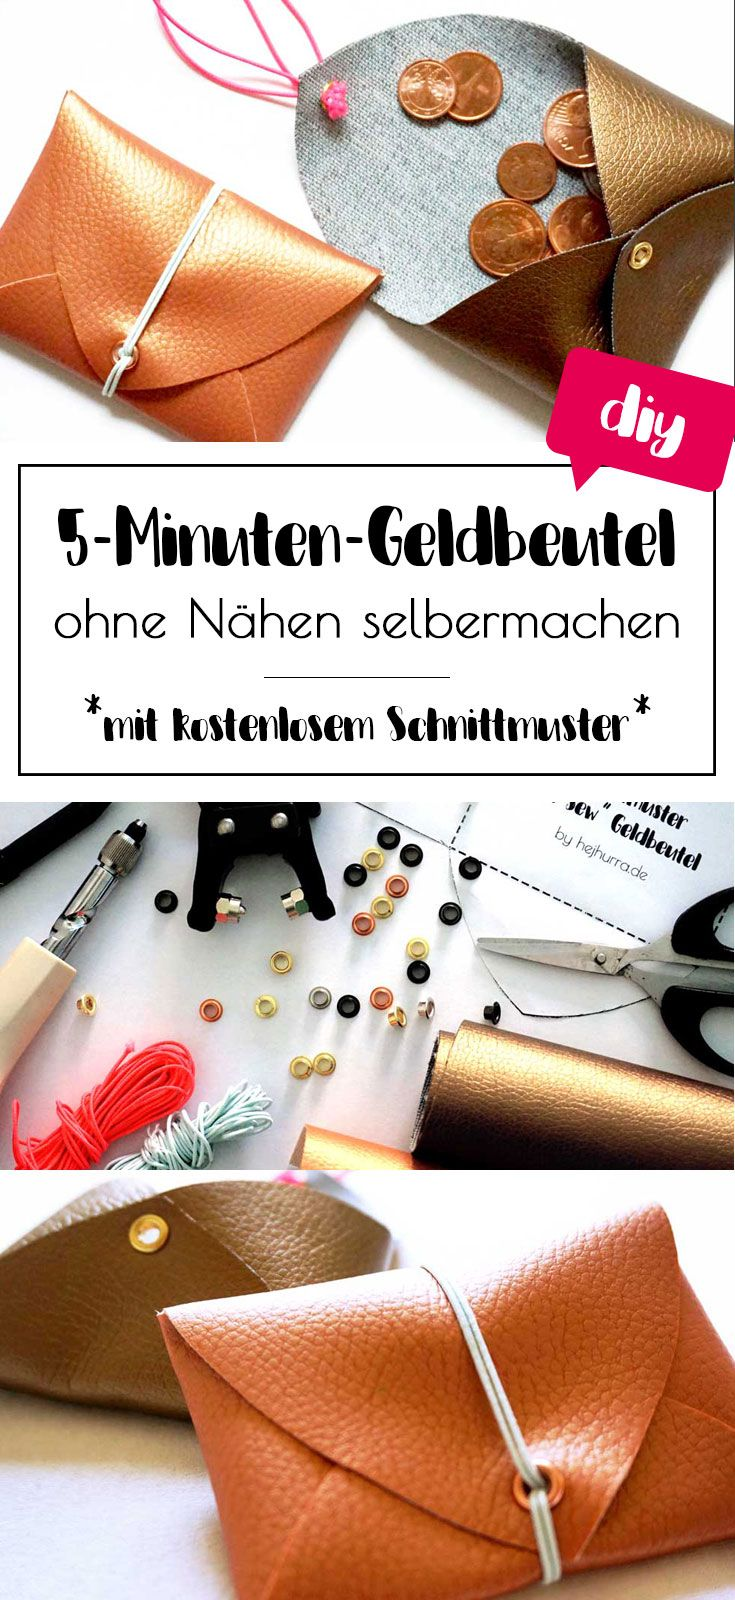 5 minuten diy geldbeutel ohne n hen selbermachen hejhurra diy ideen n hen geschenke und. Black Bedroom Furniture Sets. Home Design Ideas